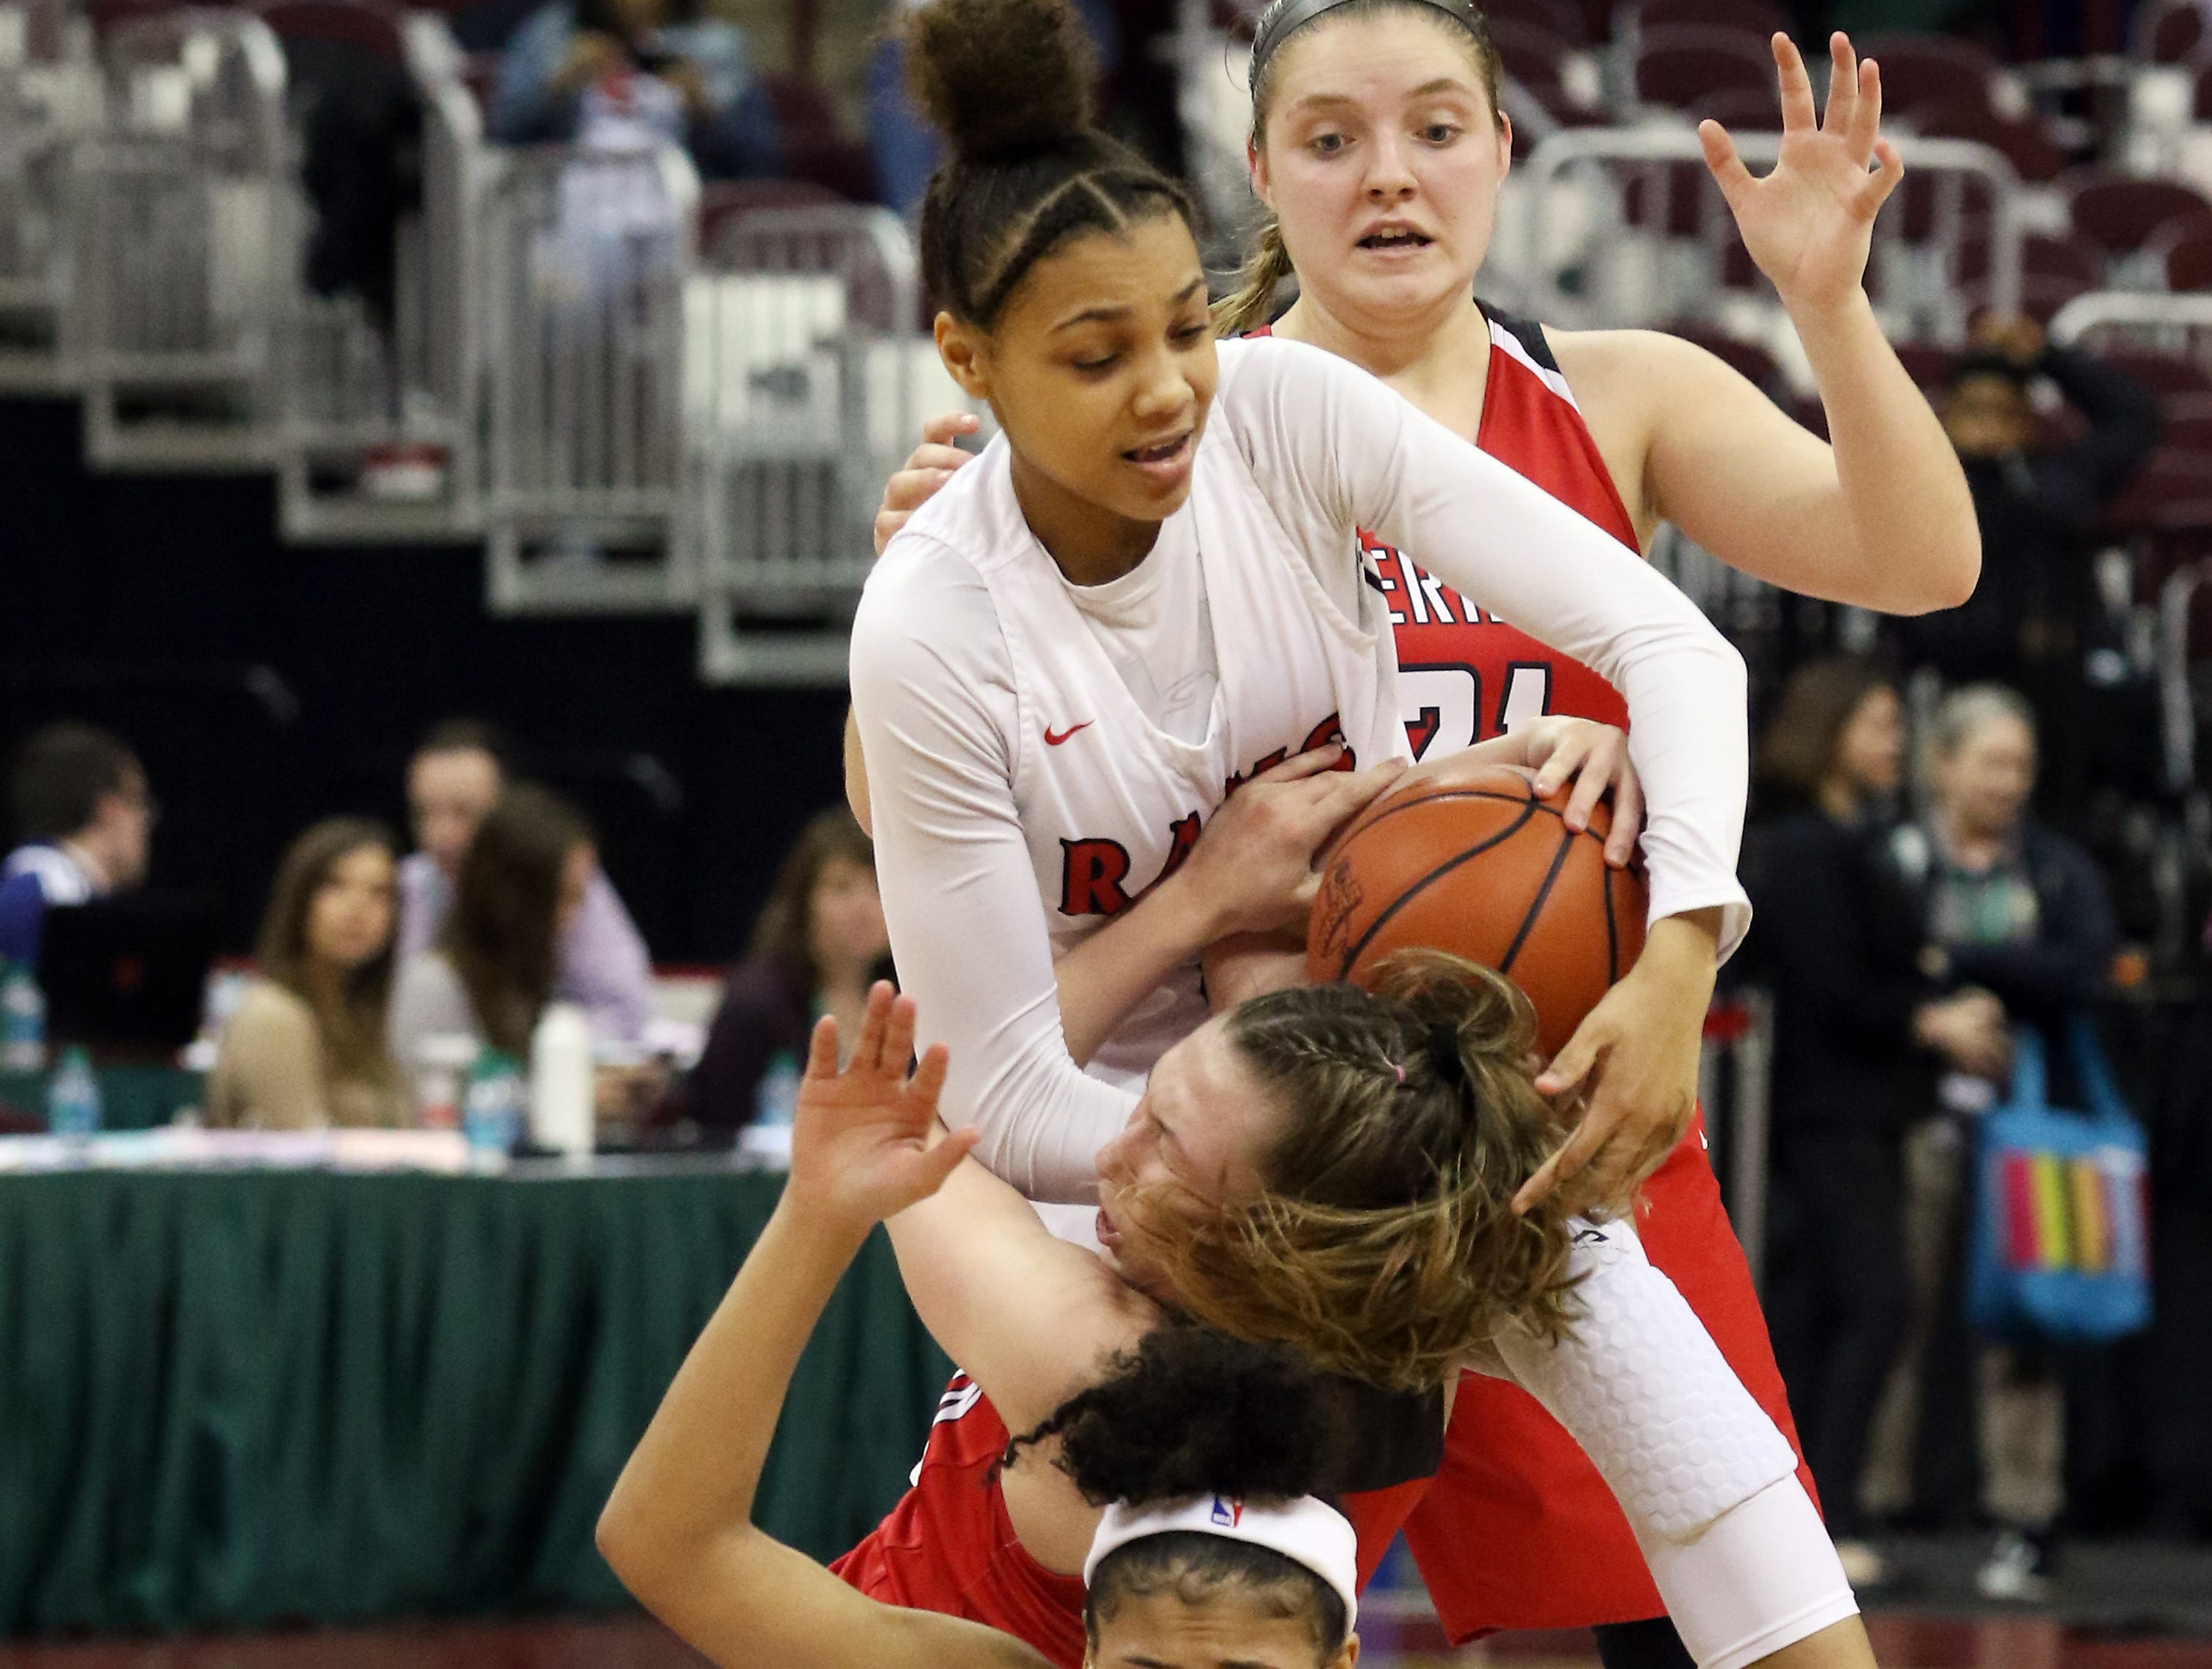 Sheridan's Bailey Beckstedt fights for the ball with Rogers' Logen Love during the Division II state semifinals in Columbus on Thursday. Also involved in the play are Sheridan's Kendyl Mick and Rogers' Cortney Gardner (24).